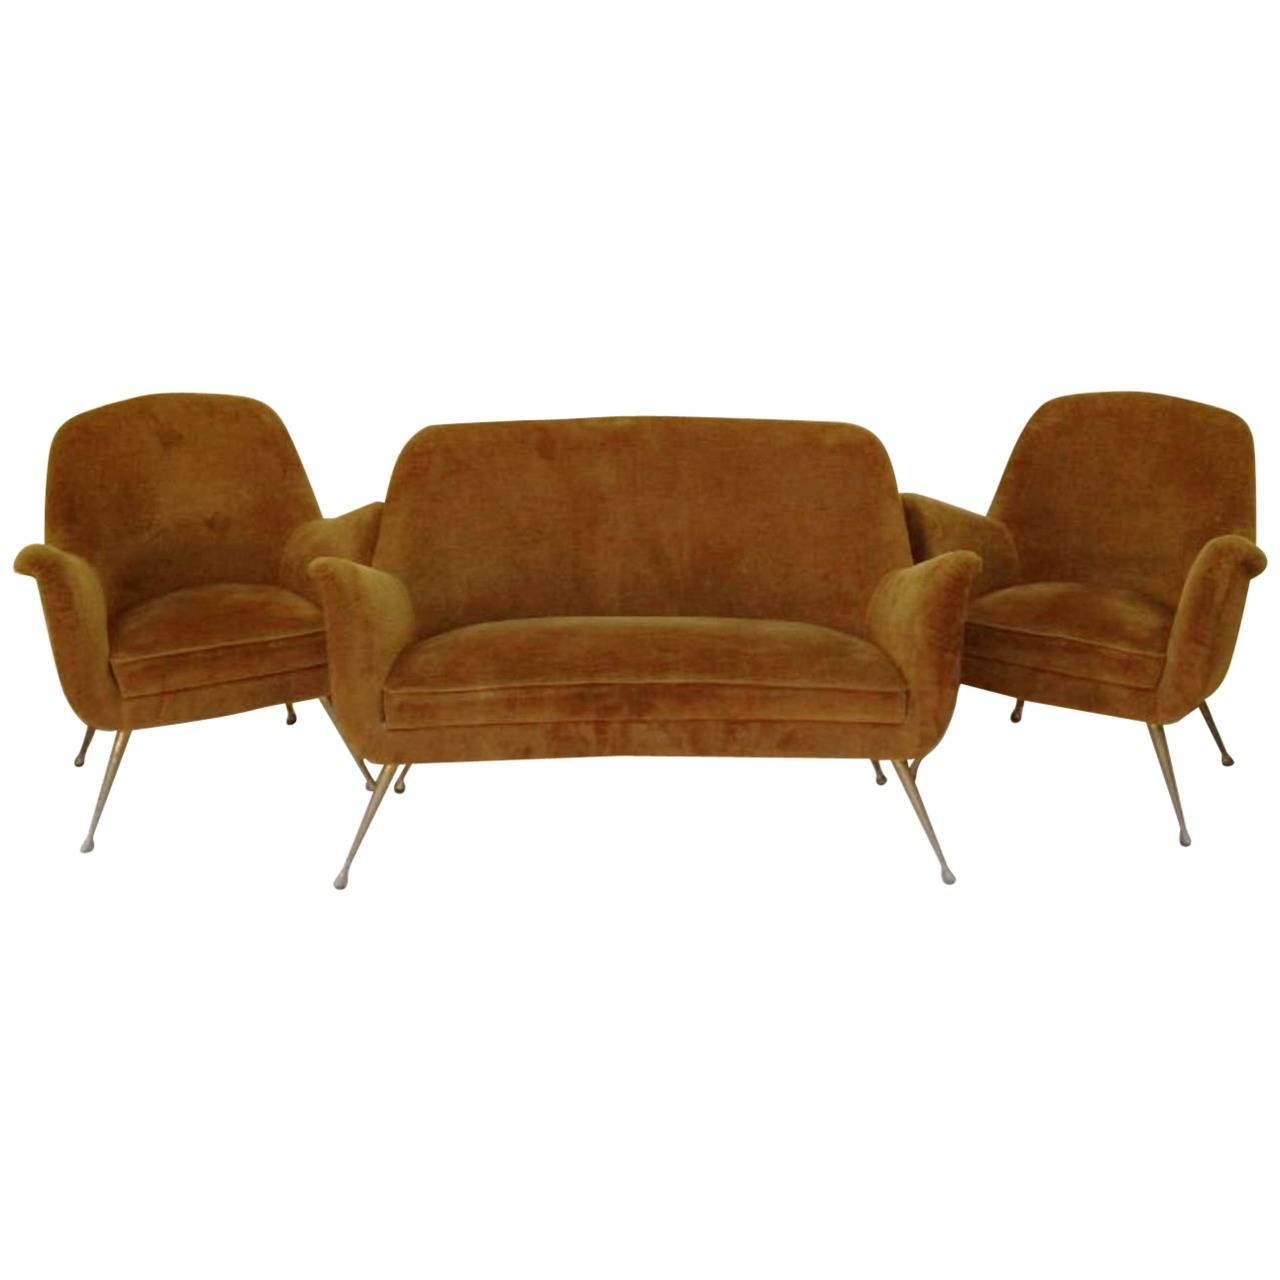 1950s amazing pair of small armchairs at 1stdibs